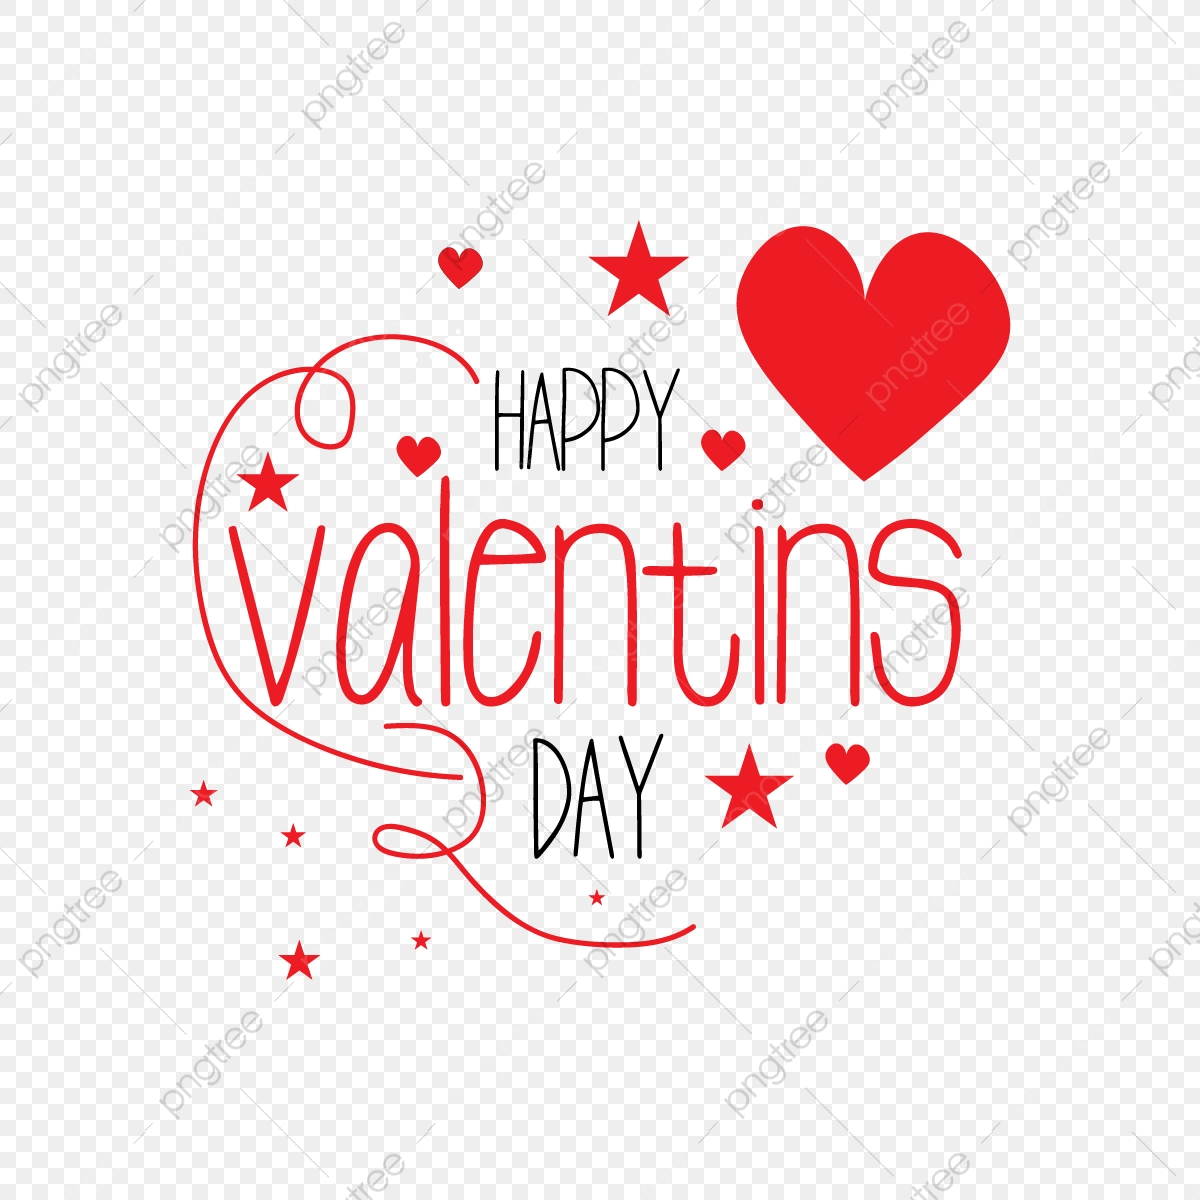 pngtree happy valentines day png transparent png image